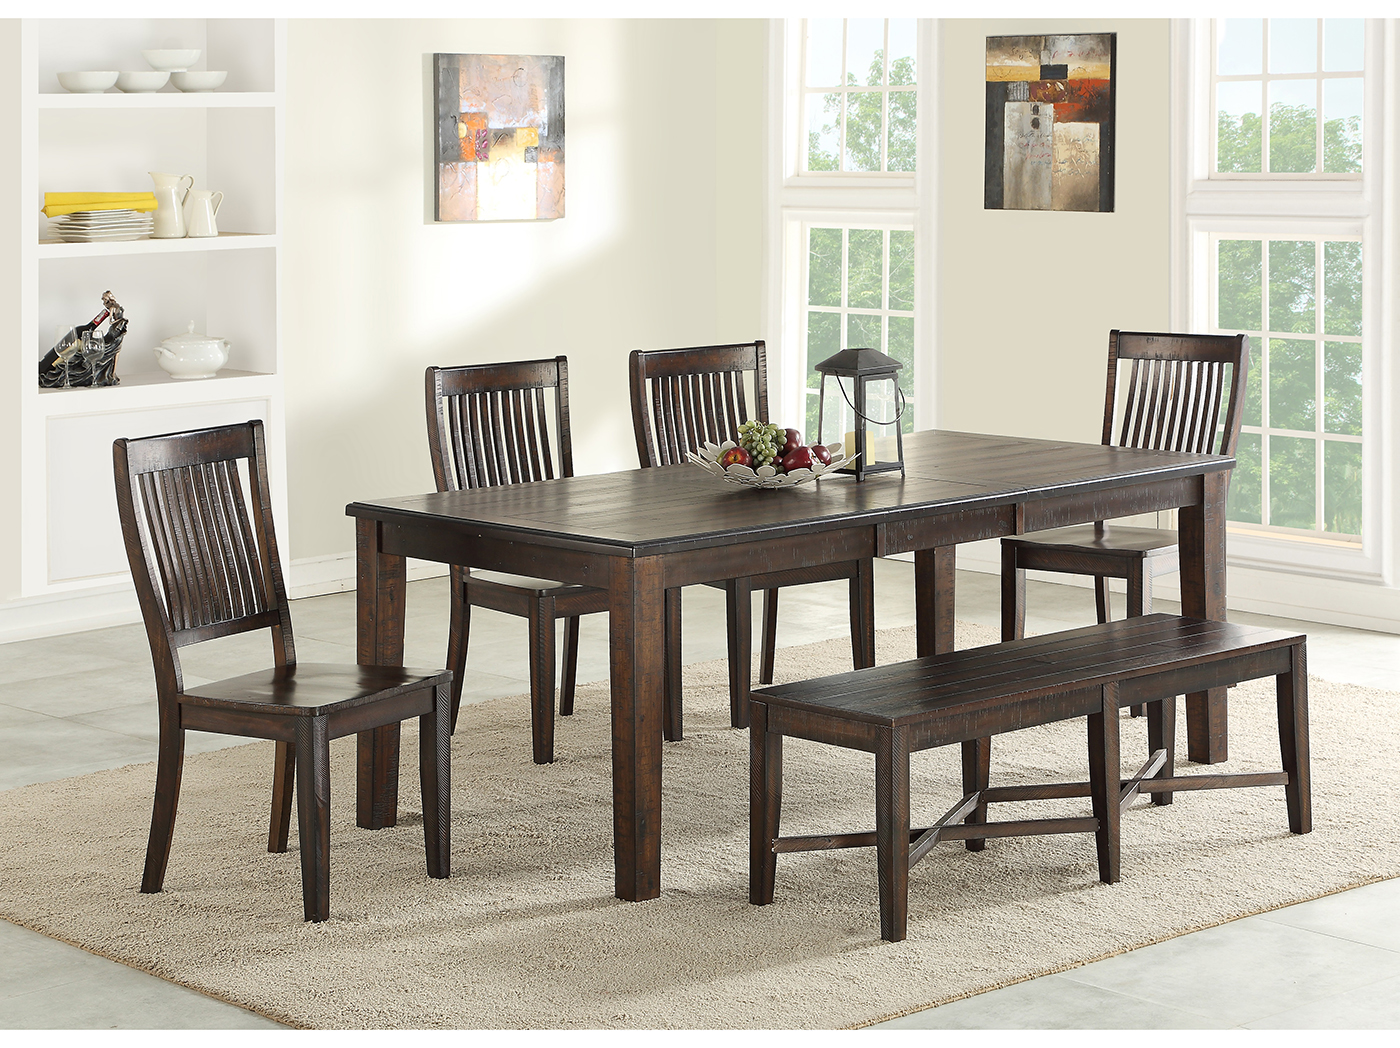 Ironwood 6-Pc. Dining Set with Bench